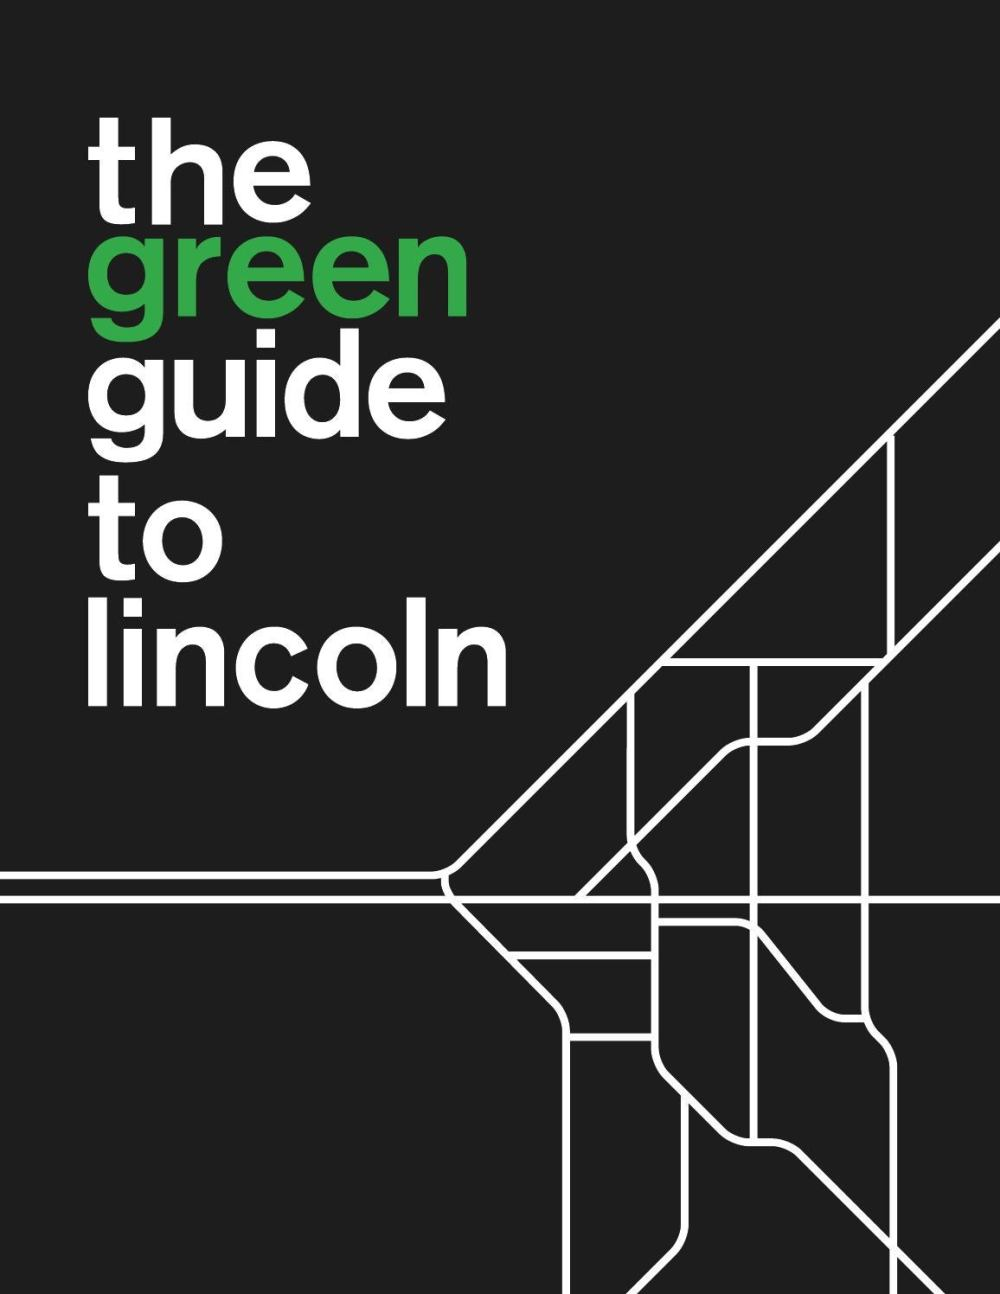 medium resolution of the green guide to lincoln